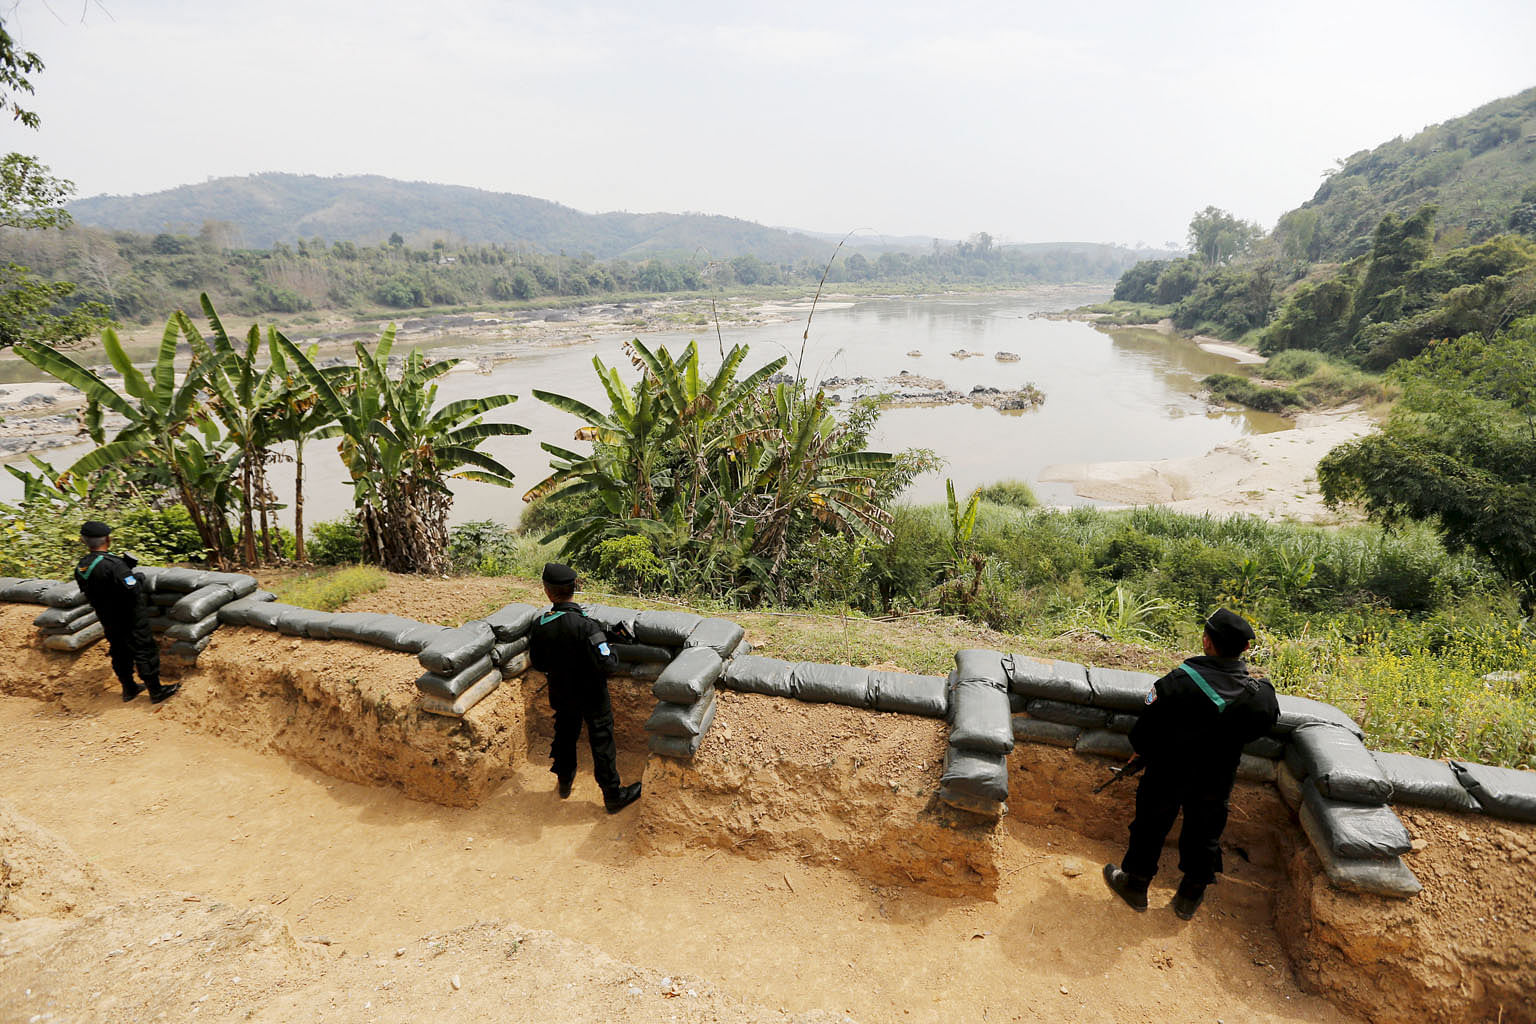 Thai soldiers at the Ban Kaen Kai operation base along the Mekong River at the border between Thailand and Laos. The 4,909km river runs through China, Myanmar, Laos, Thailand, Cambodia and Vietnam. But the writer notes that only its lower portion is